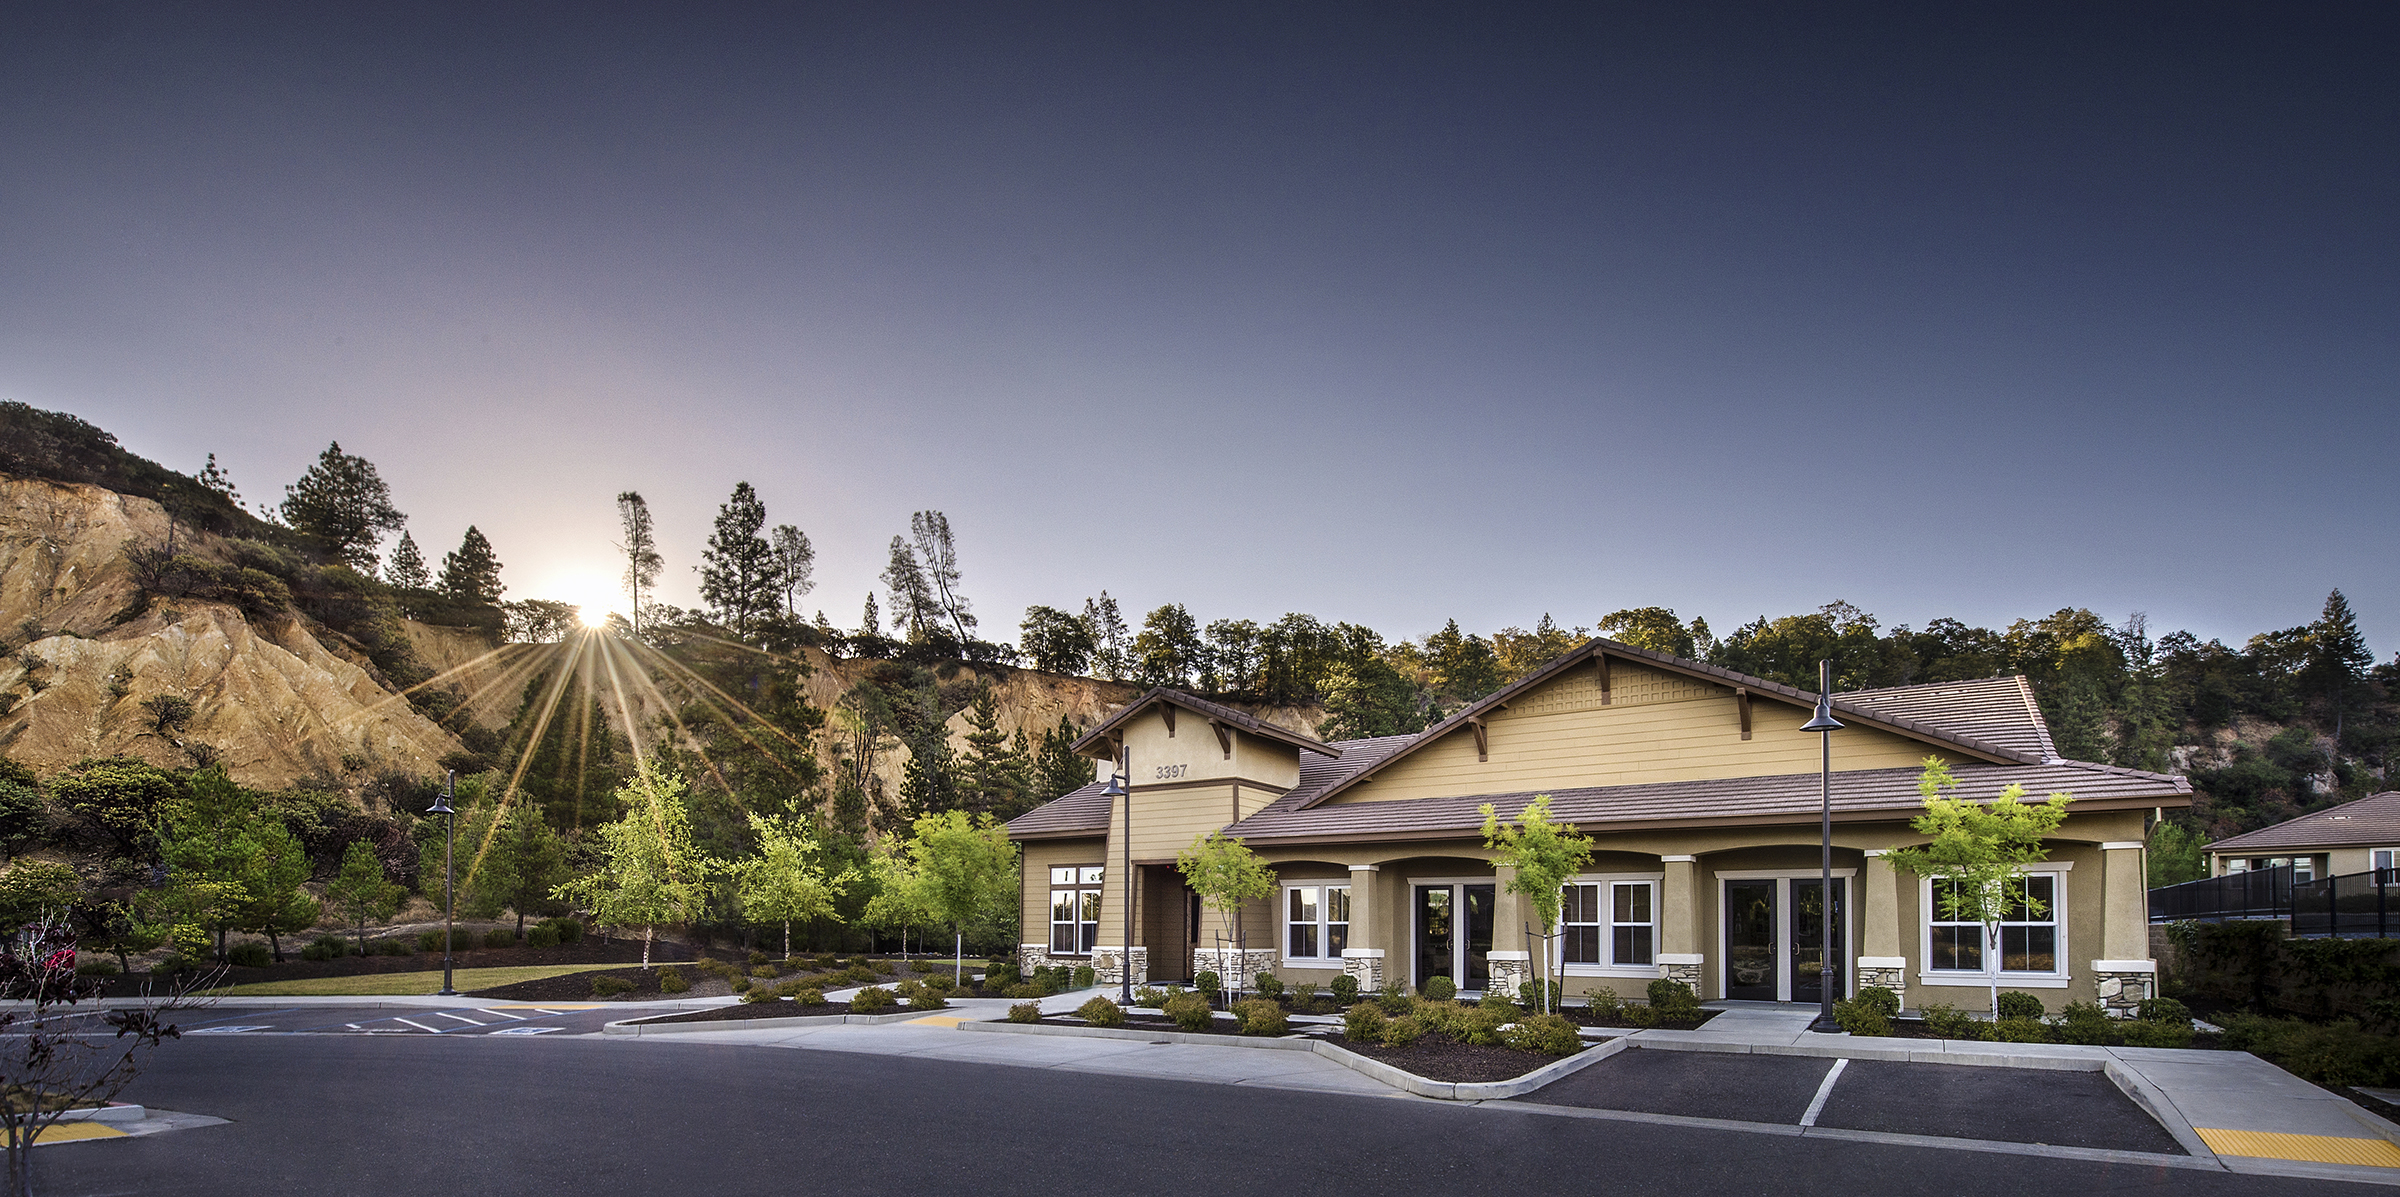 Silverado Village in Placerville offers a Variety of Lifestyle Options for Seniors